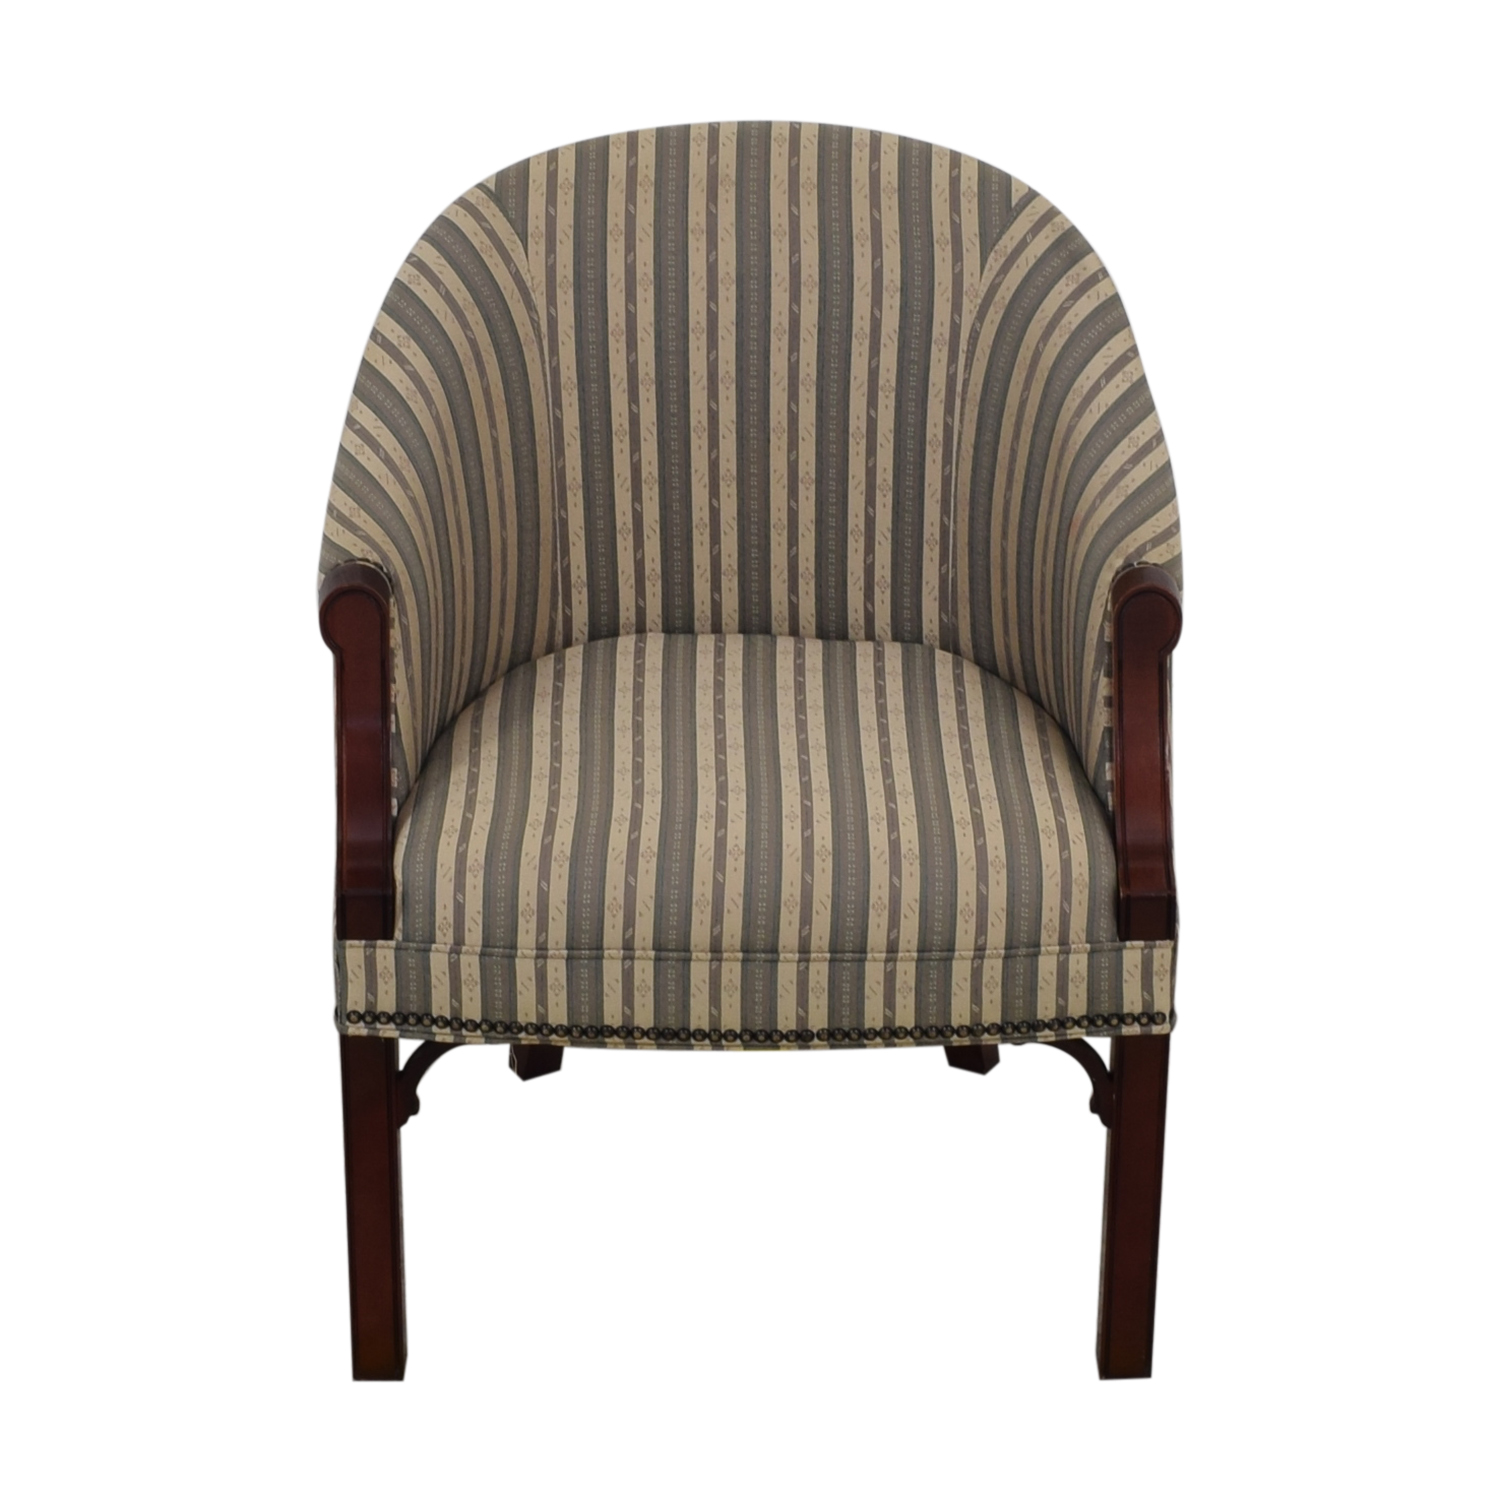 buy Kimball Independence Newcastle Striped Chair Kimball